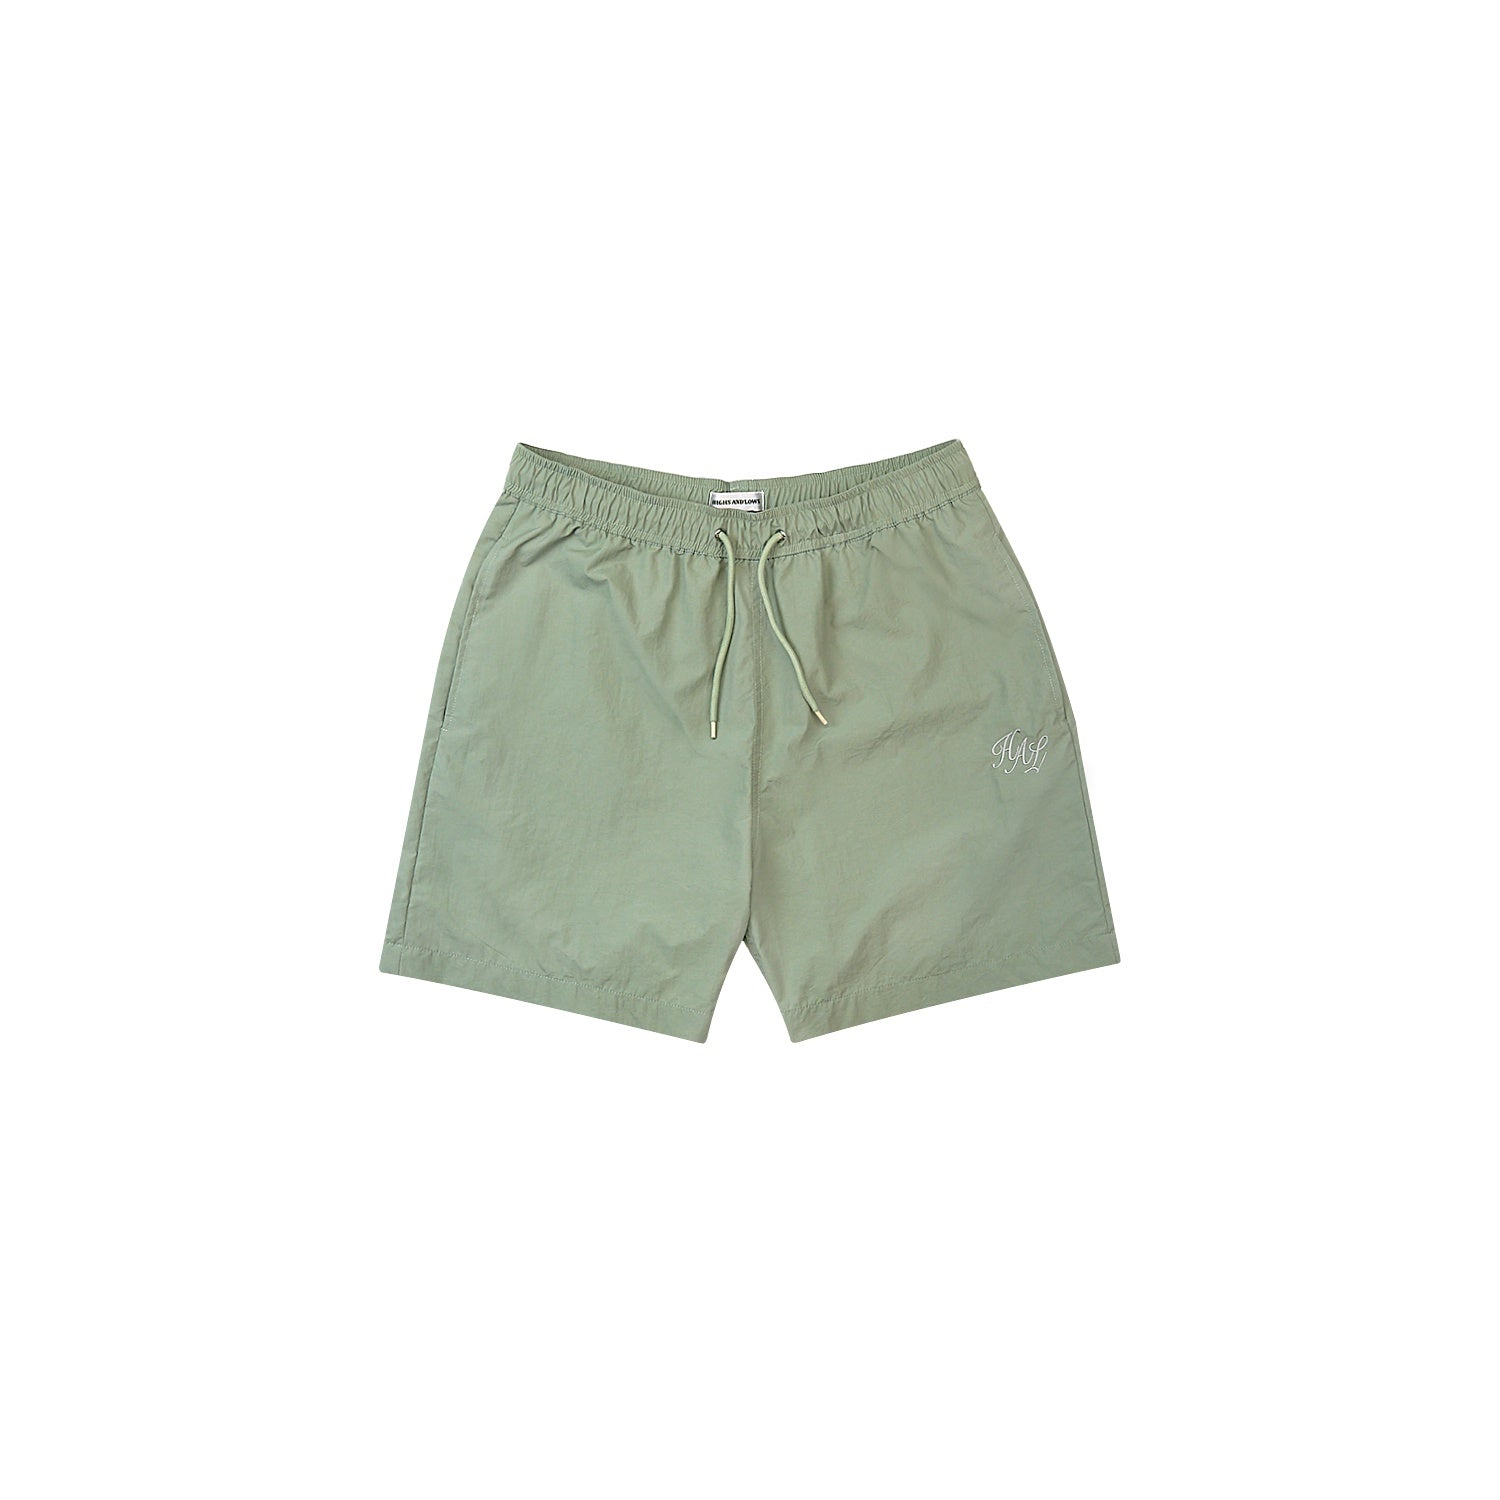 HAL SS20 Nylon Swim Short - Sage Green